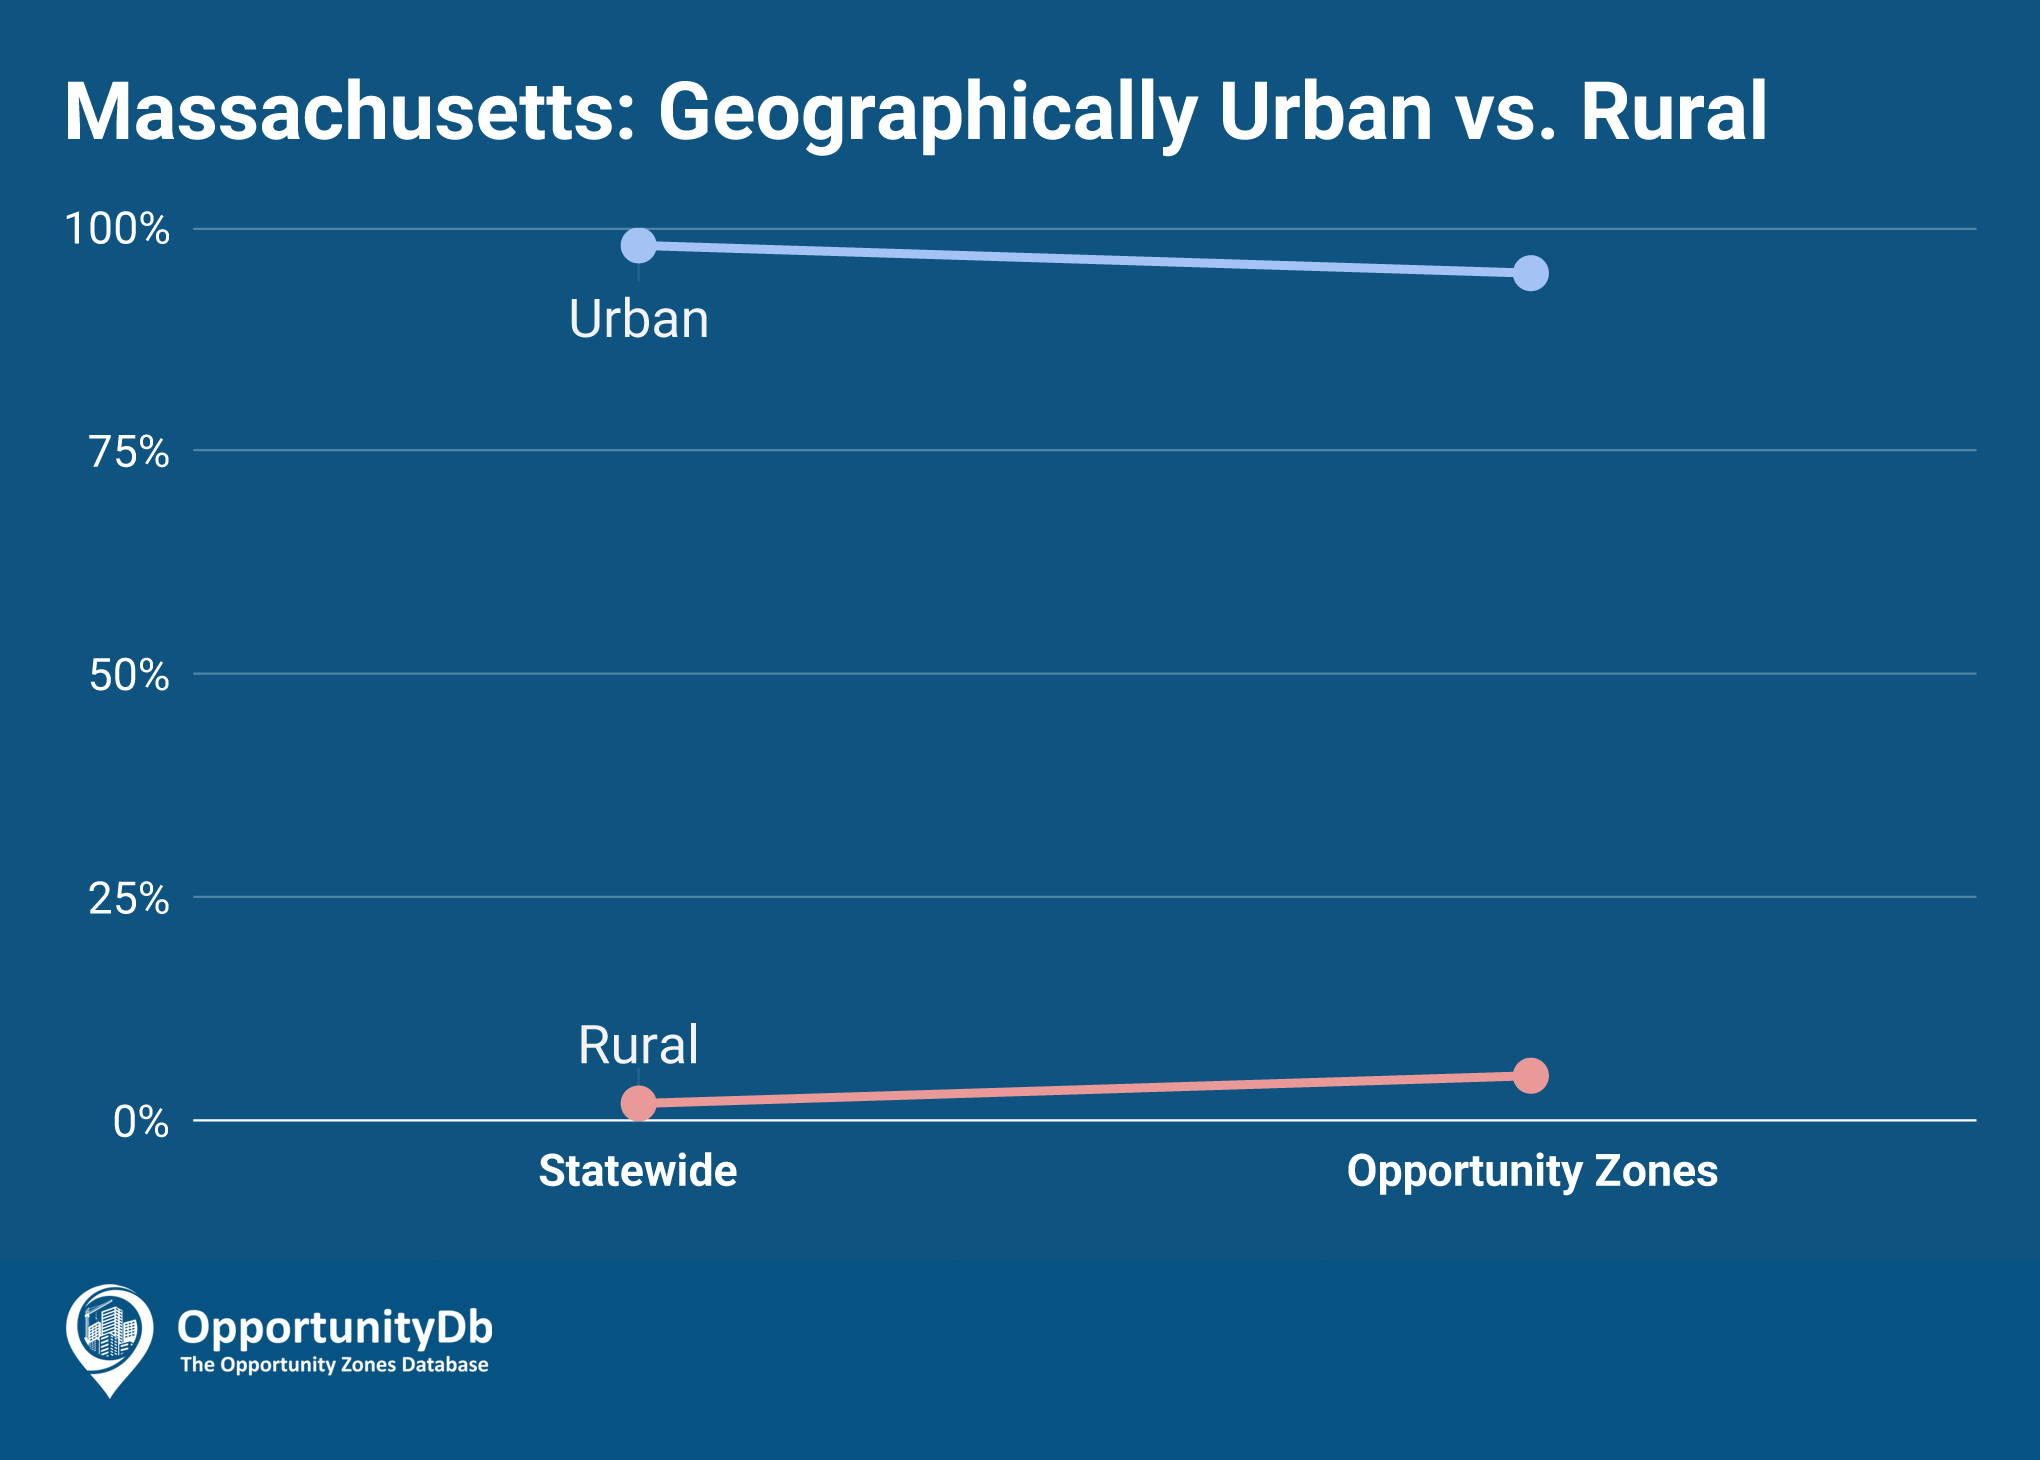 Urban vs. Rural in Maryland Opportunity Zones